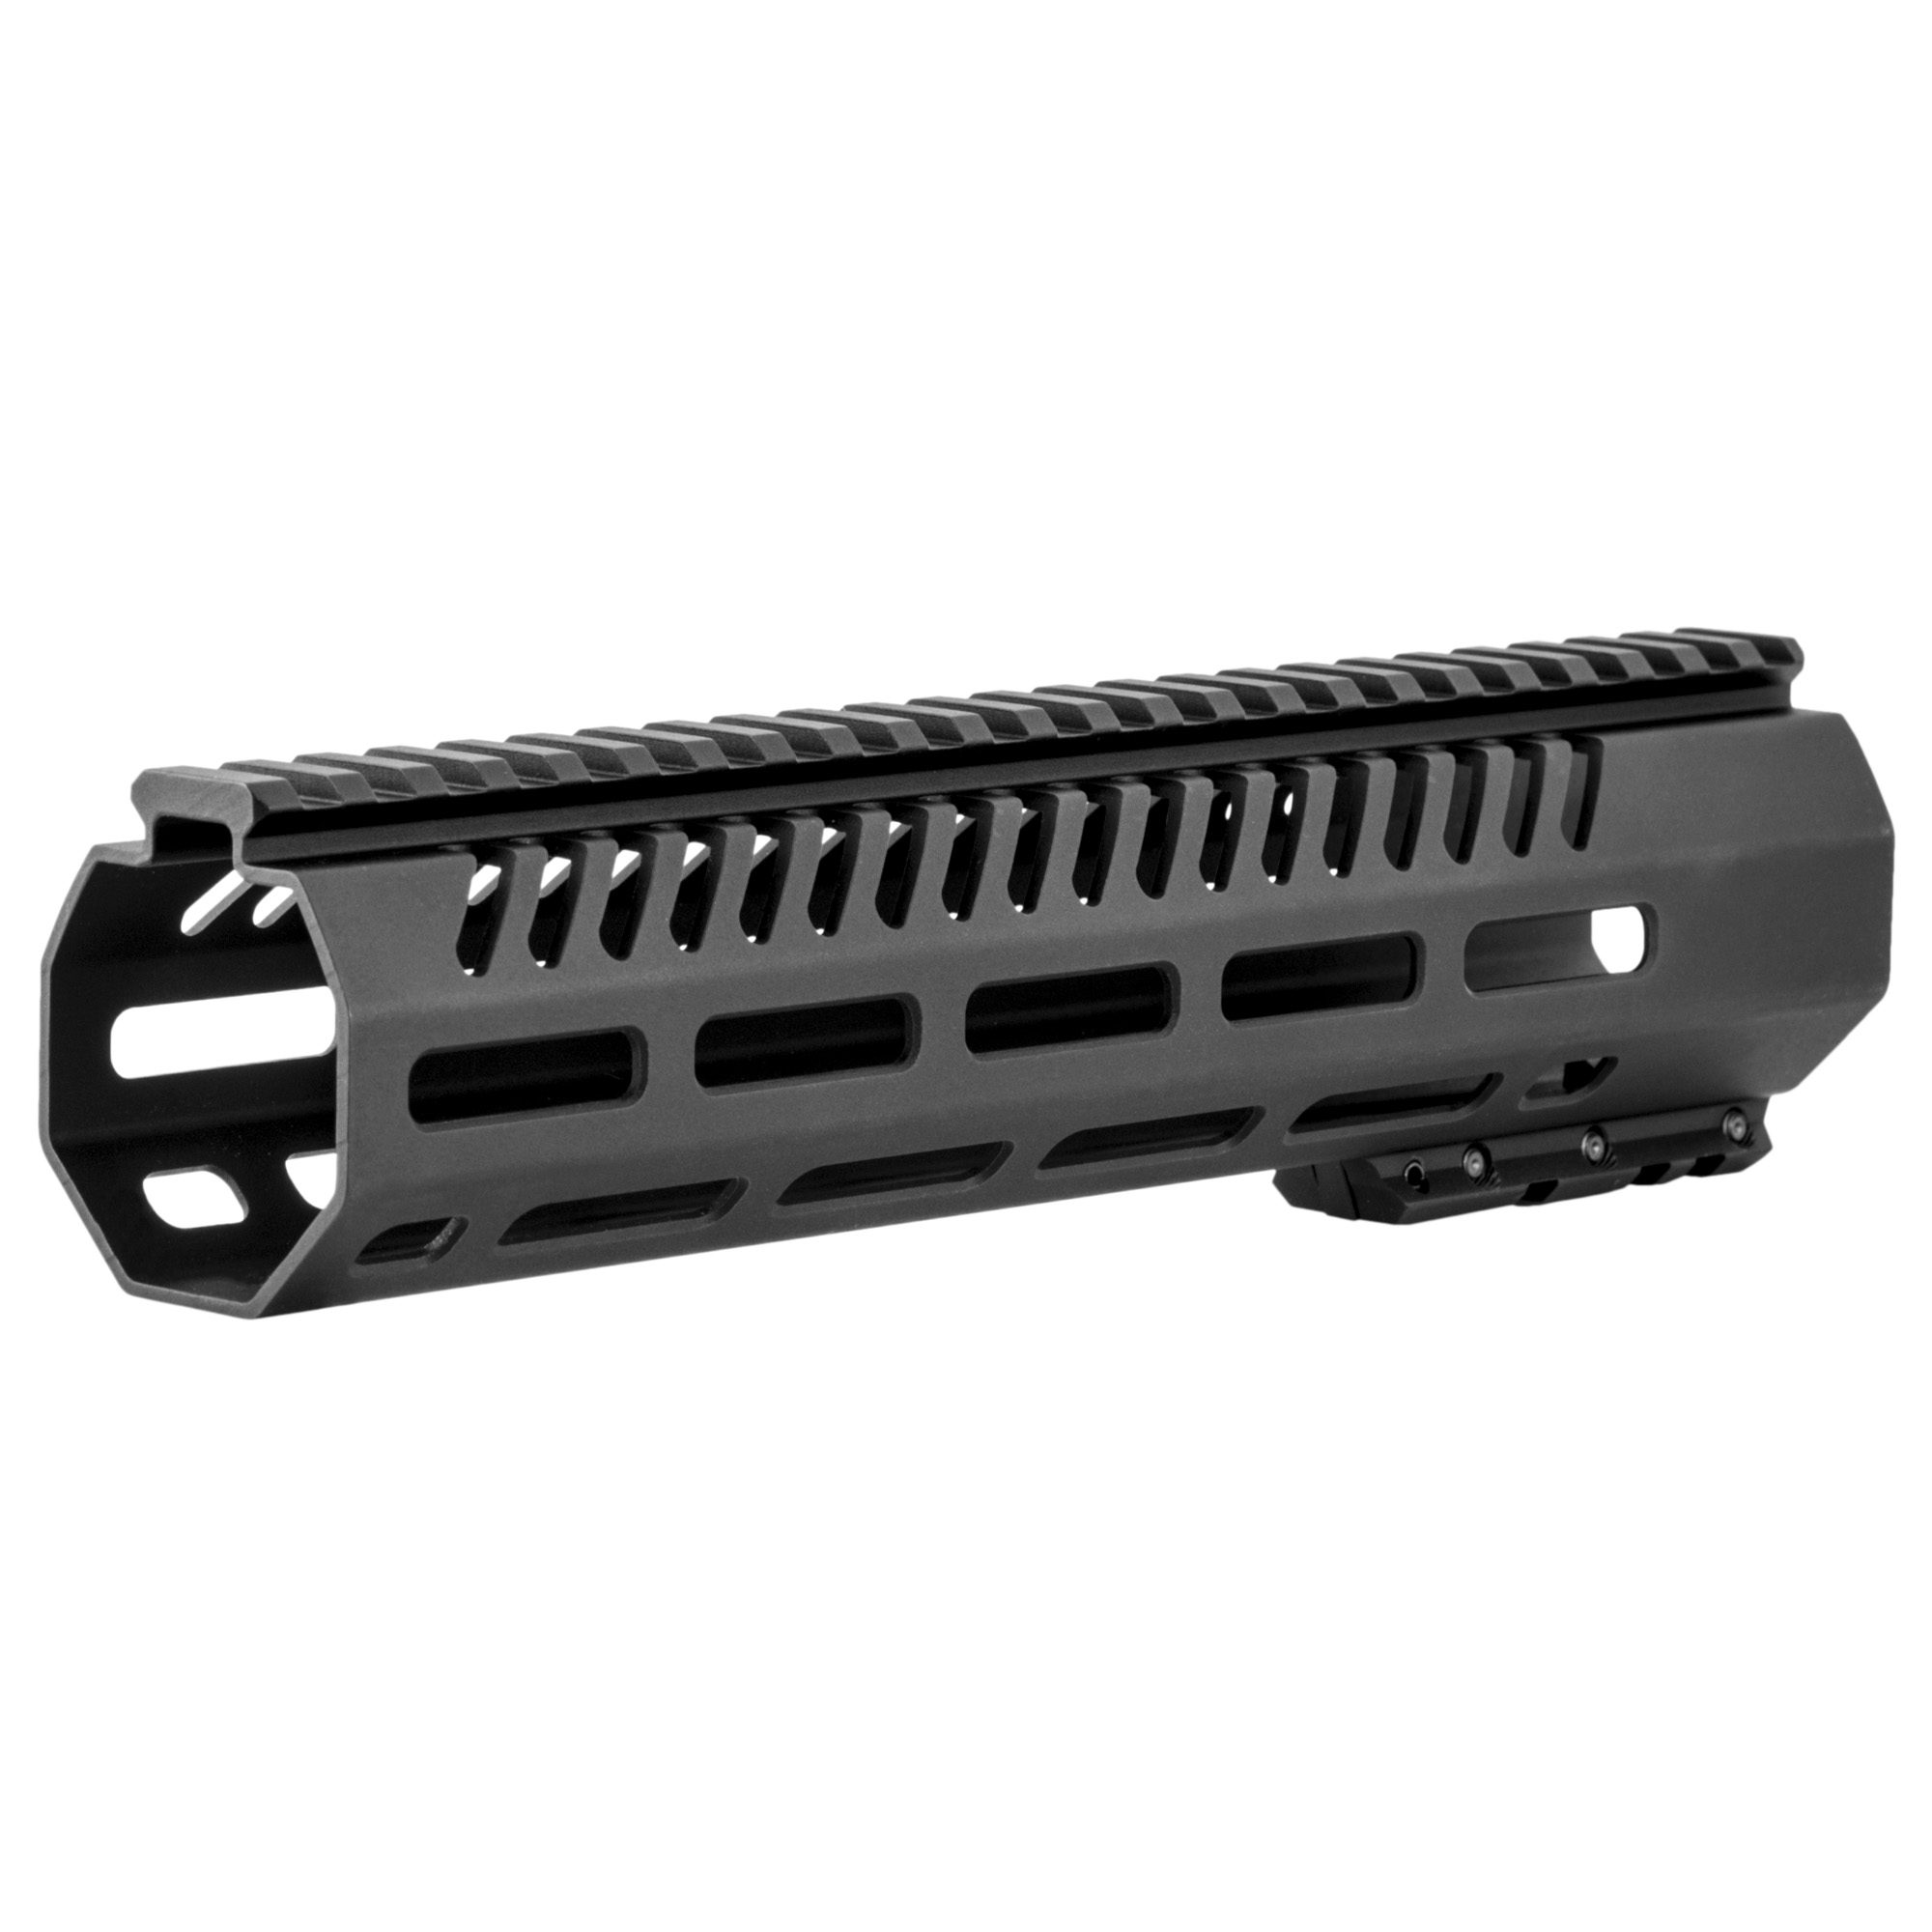 """The Tekko metal 10"""" AR-15 Free Float M-LOK rail system replaces the plastic factory handguard. M-LOK(TM) attachment system provides secure mounting for MIL-STD 1913 Picatinny Rails and accessories such as vertical grips"""" lights"""" lasers"""" bipods and other rail mounted kit. Will accommodate most suppressor installations. Patent pending mounting"""" indexing and lock up system. Larger range of modularity with offset mounting positions as well as the traditional 12"""" 3"""" 6 and 9 o'clock positions. Monolithic style top rail eliminates the gap between the receiver and rail. Minor assembly required"""" utilizes standard barrel nut and will accommodate a standard front sight post"""" low profile gas block or Picatinny Rail gas block. The M-LOK(TM) system allows for universal modularity between numerous manufacturers of accessories"""" and accessory rails."""